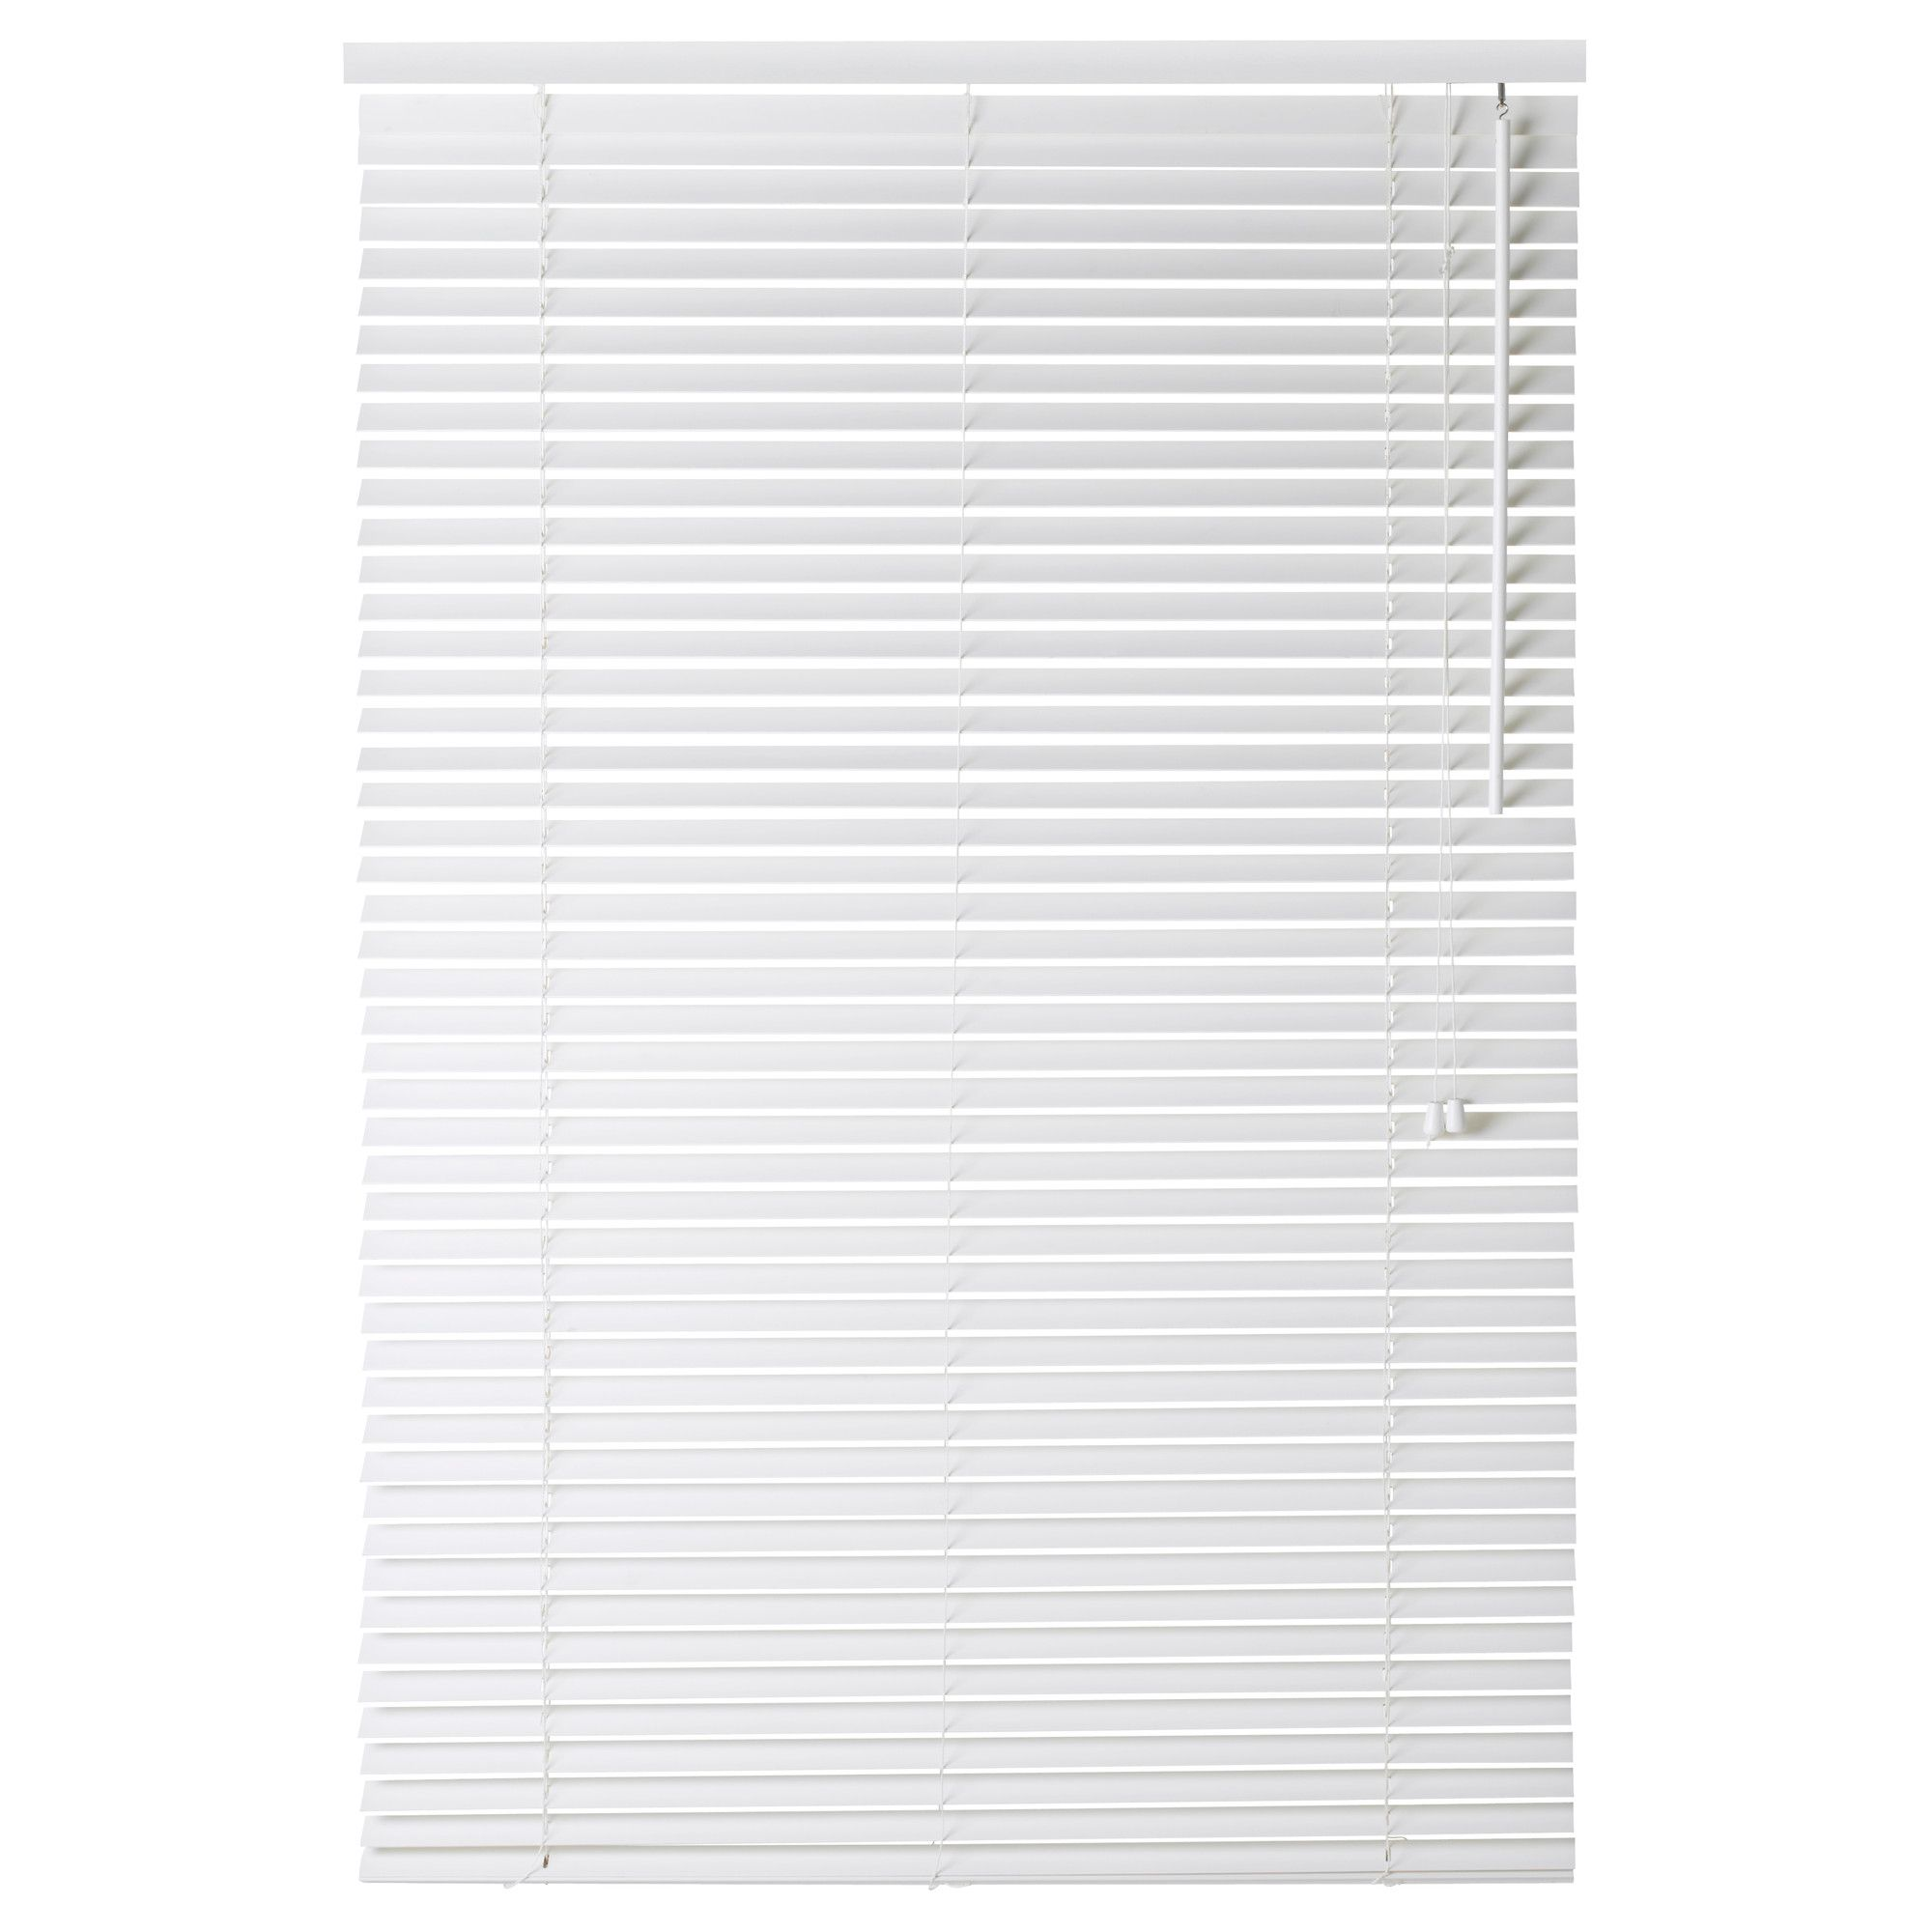 lindmon venetian blind white 100x155 cm ikea tara living room pinterest. Black Bedroom Furniture Sets. Home Design Ideas